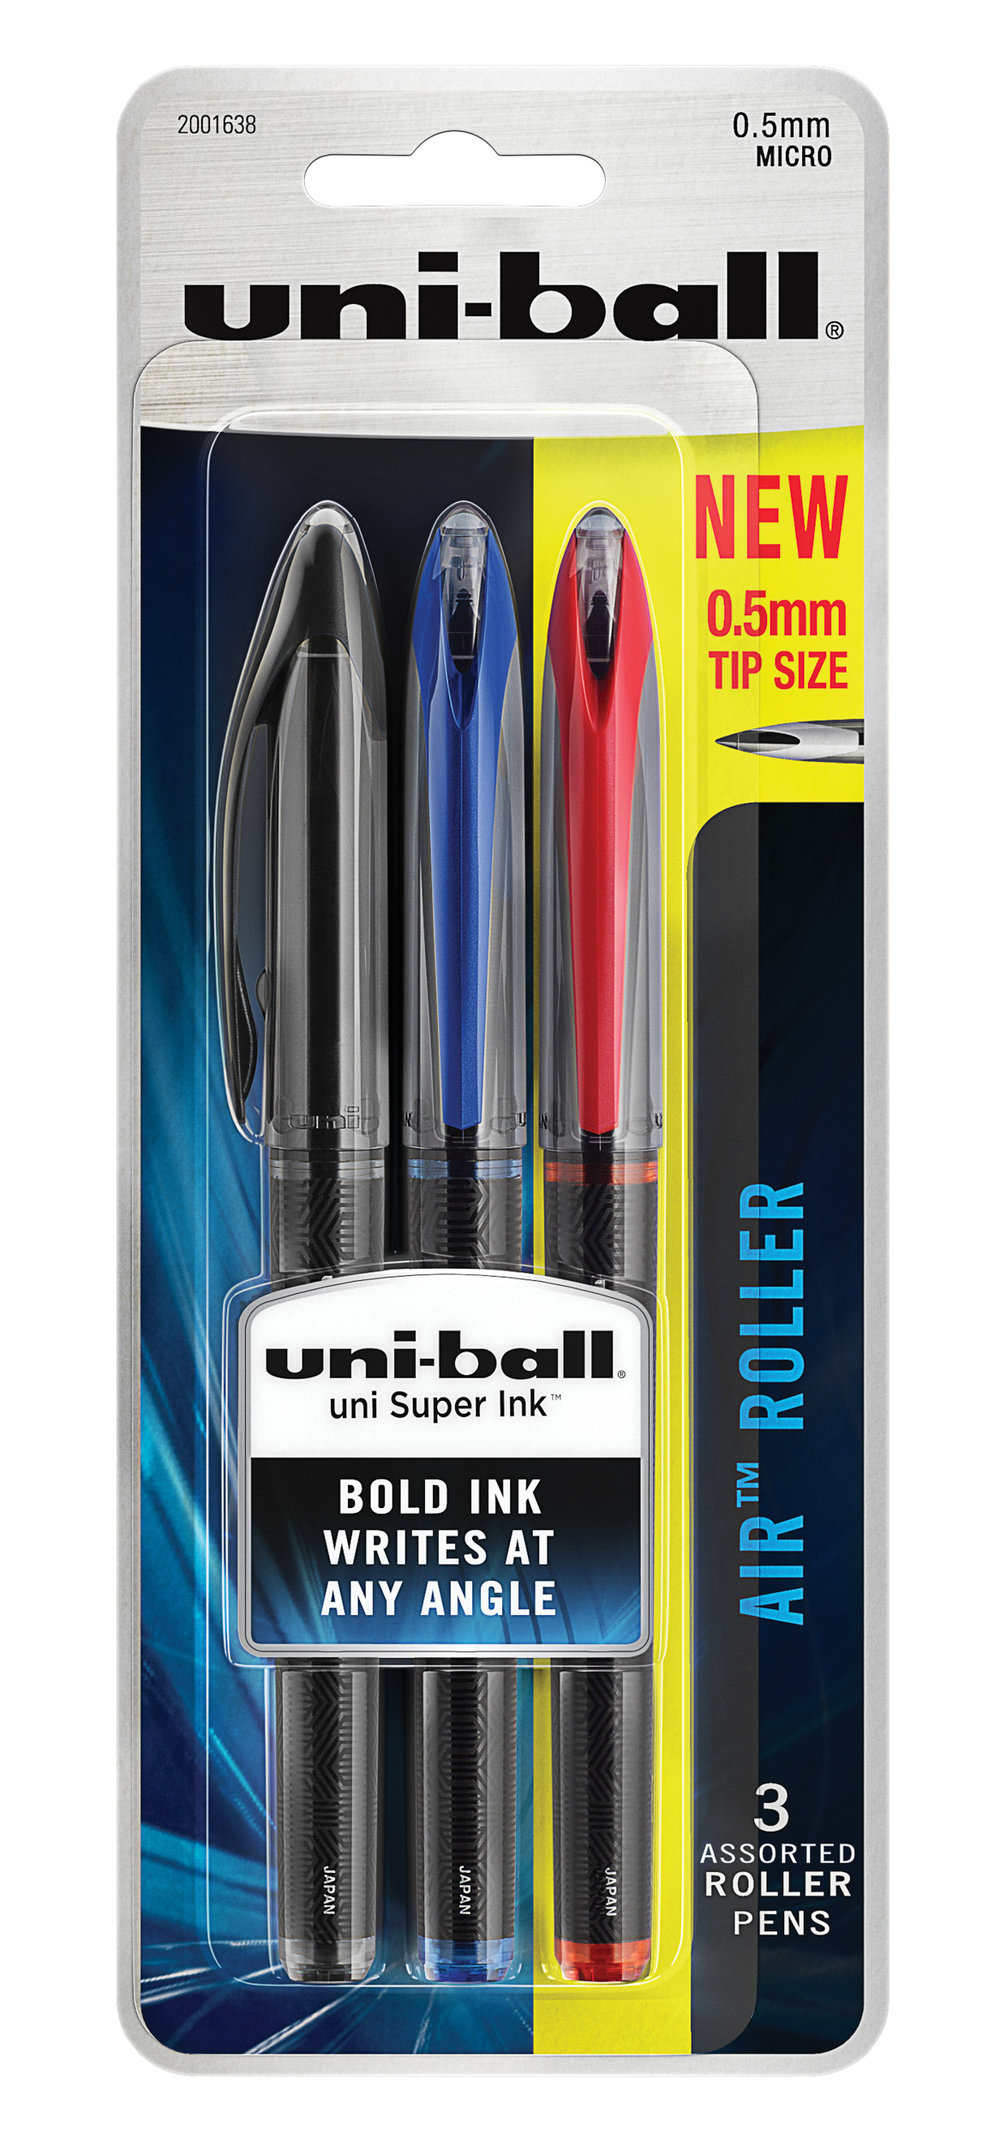 Uniball_Assorted_RGB-2.jpg